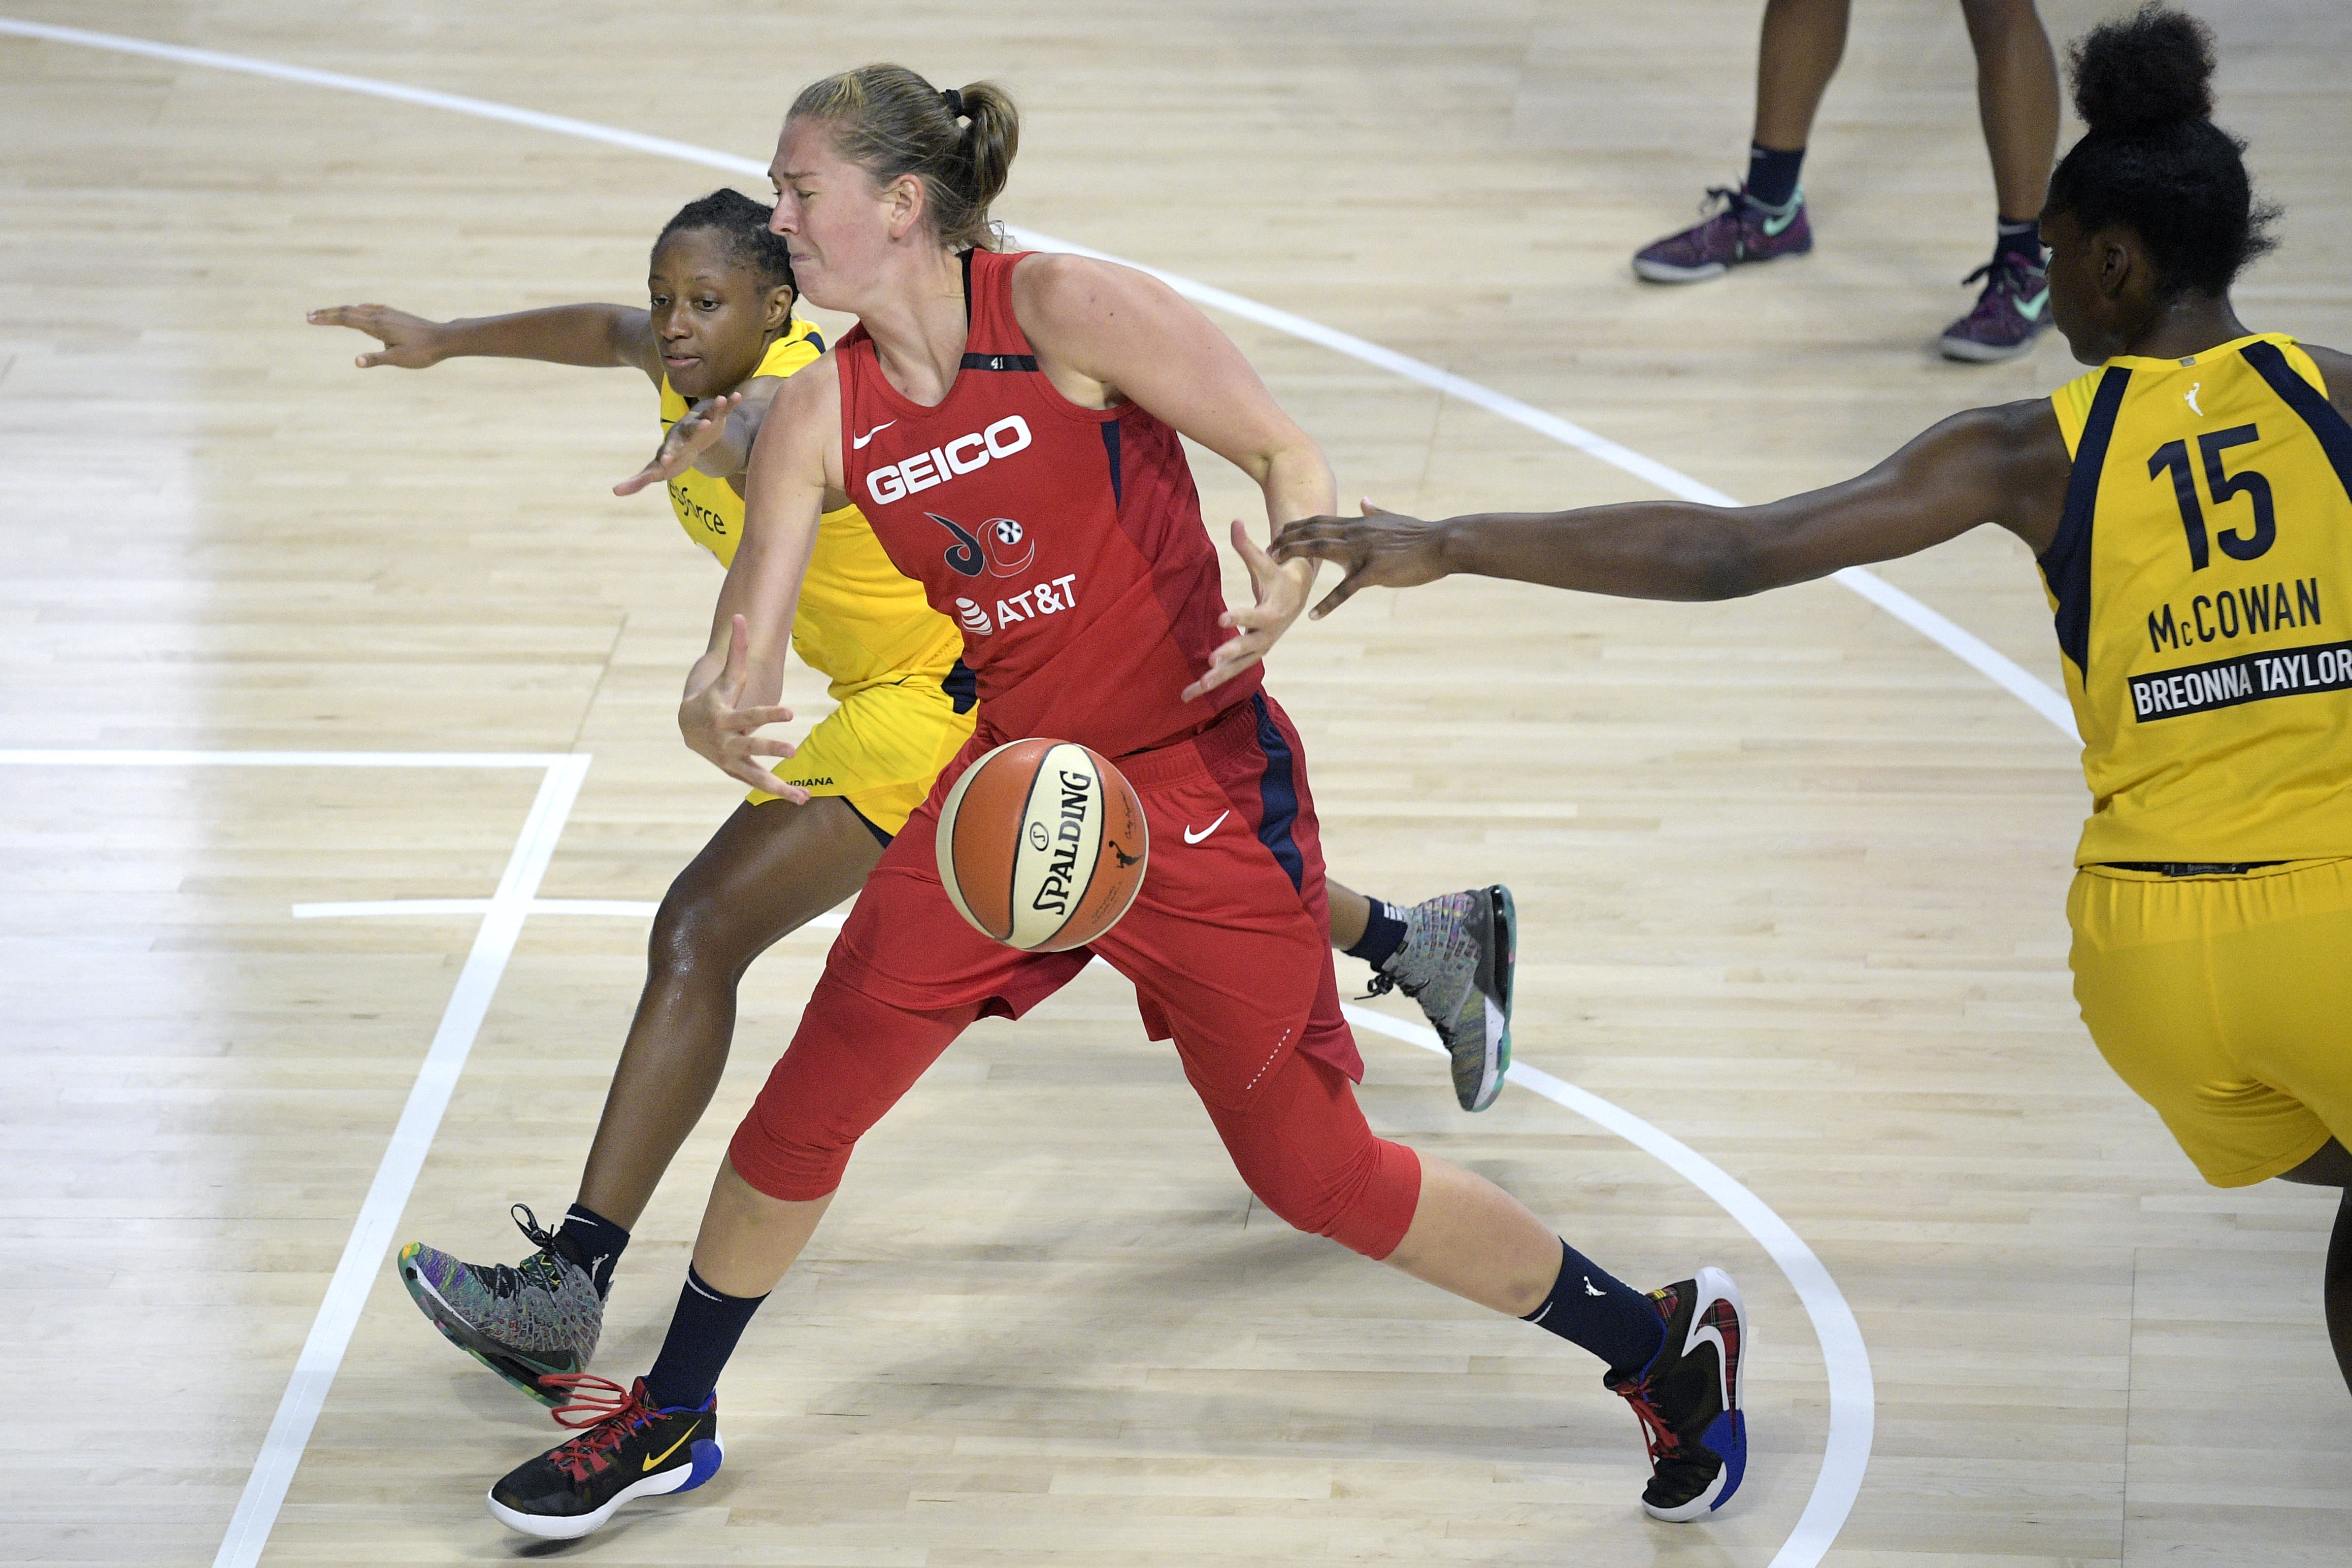 Indiana Fever's Teaira McCowan (15) strips the ball away from Washington Mystics forward Emma Meesseman, center, as Fever guard Kelsey Mitchell helps defend during the first half of a WNBA basketball game, Saturday, July 25, 2020, in Ellenton, Fla. (AP Photo/Phelan M. Ebenhack)